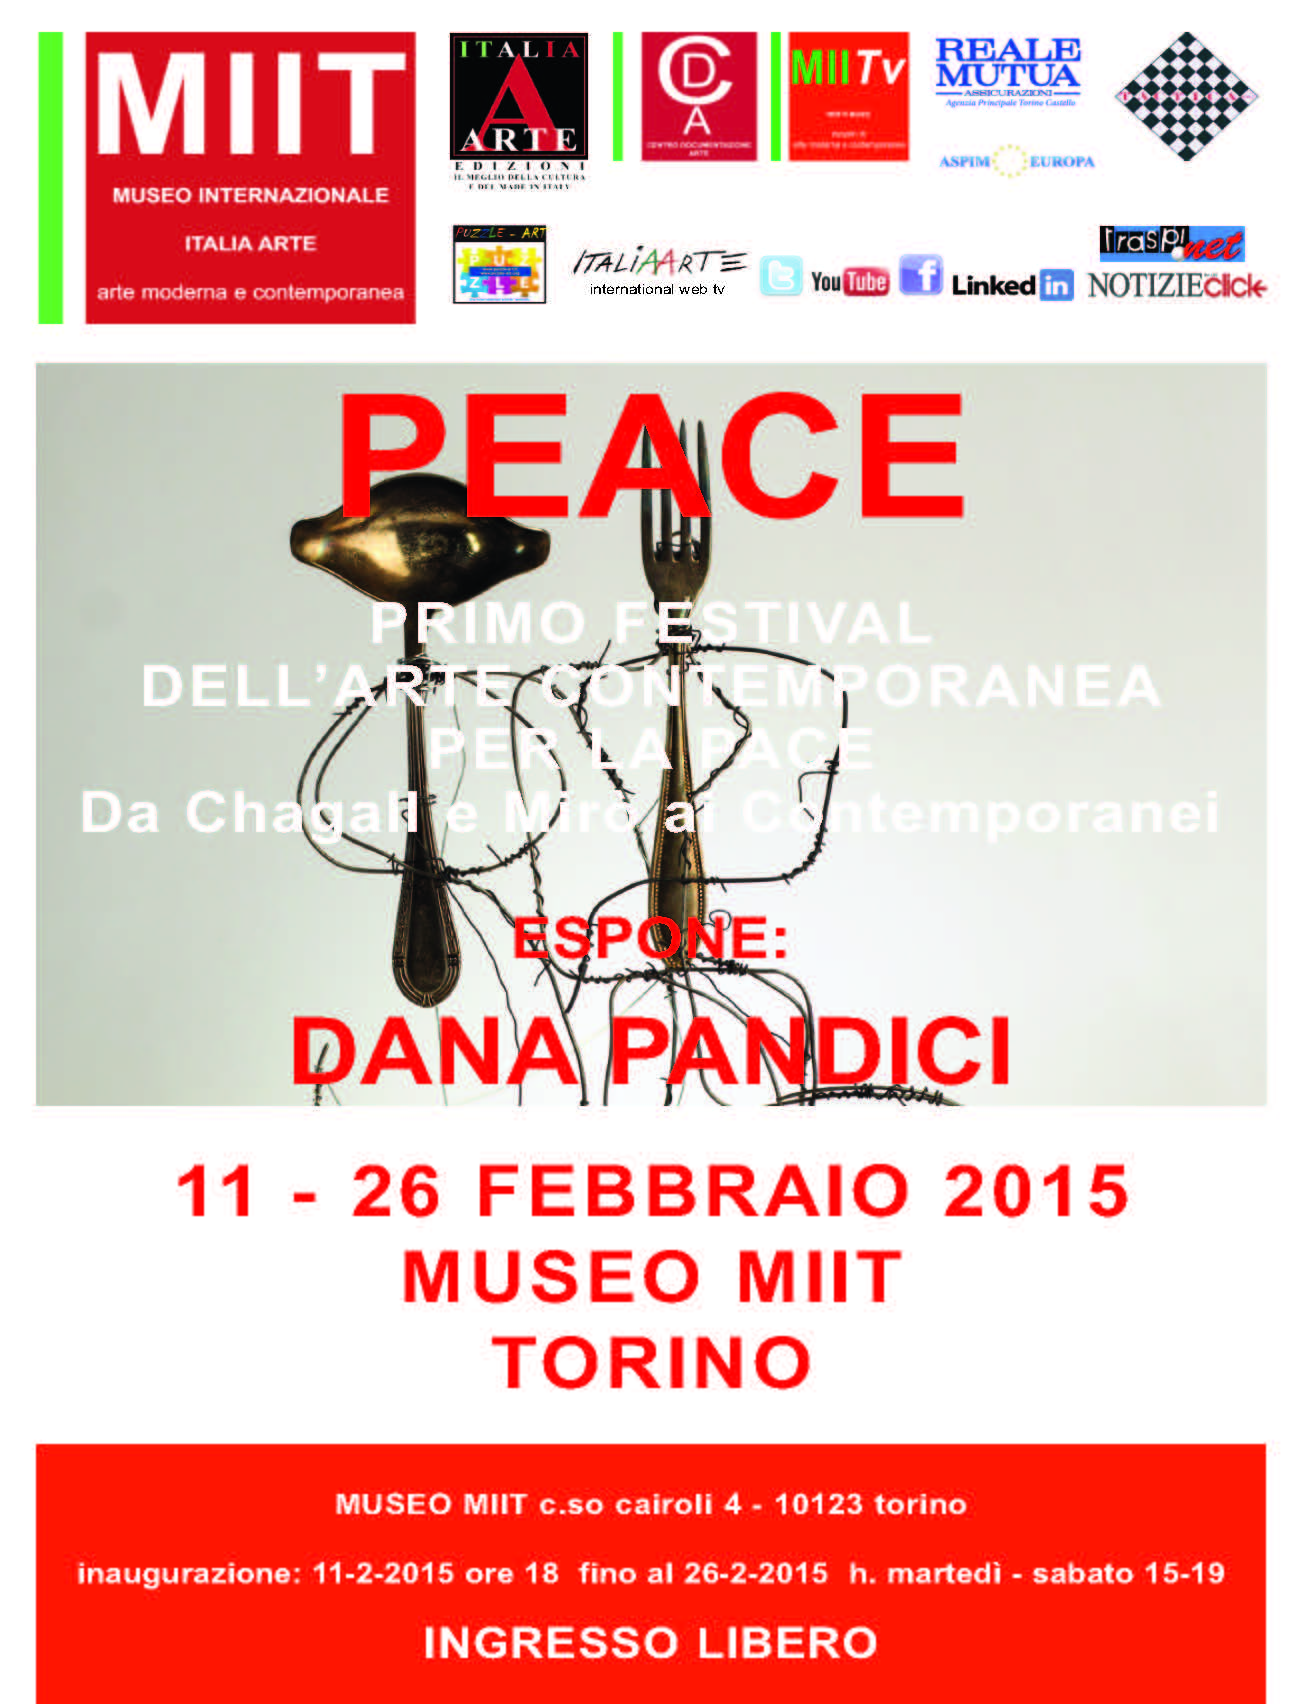 "Dana Pandicis participation at the first festival of contemporary art for peace ""Da Chagall e Mirò ai Contemporanei"""